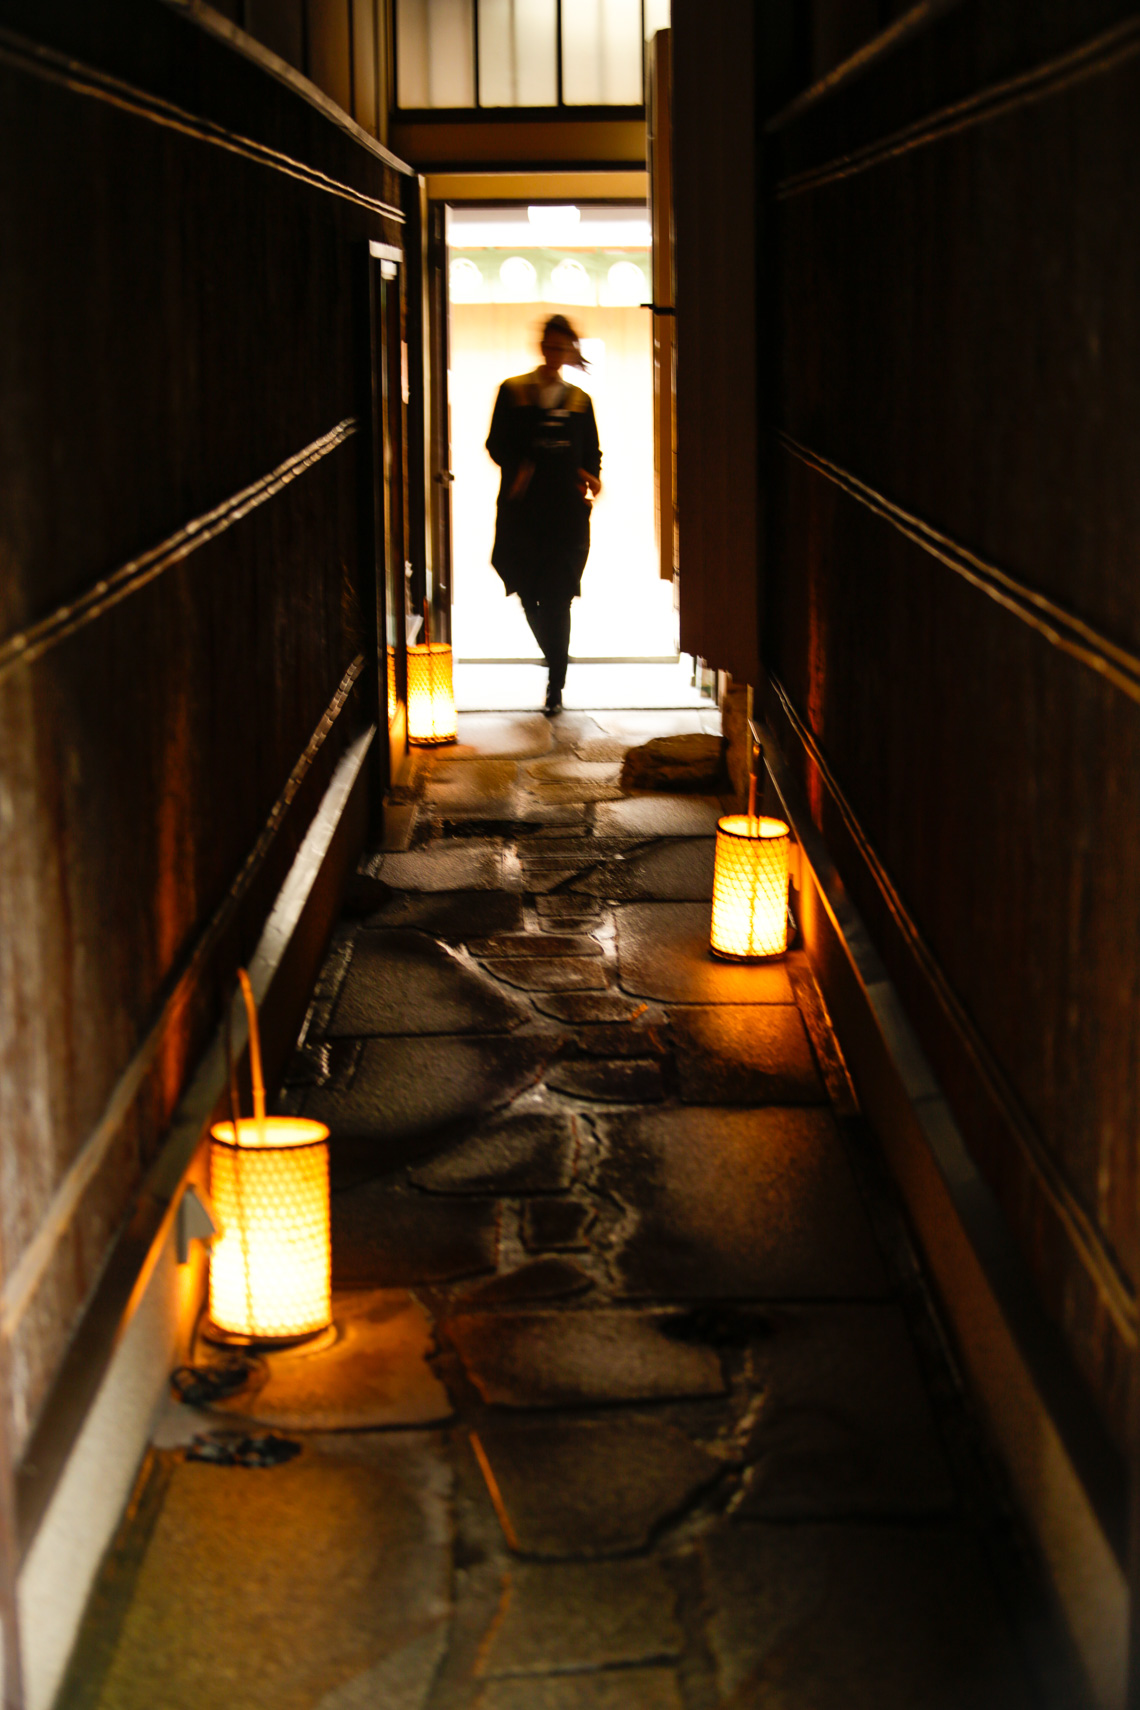 Fleeting moment in a laneway in Kyoto, Japan by Paul Green Photographer